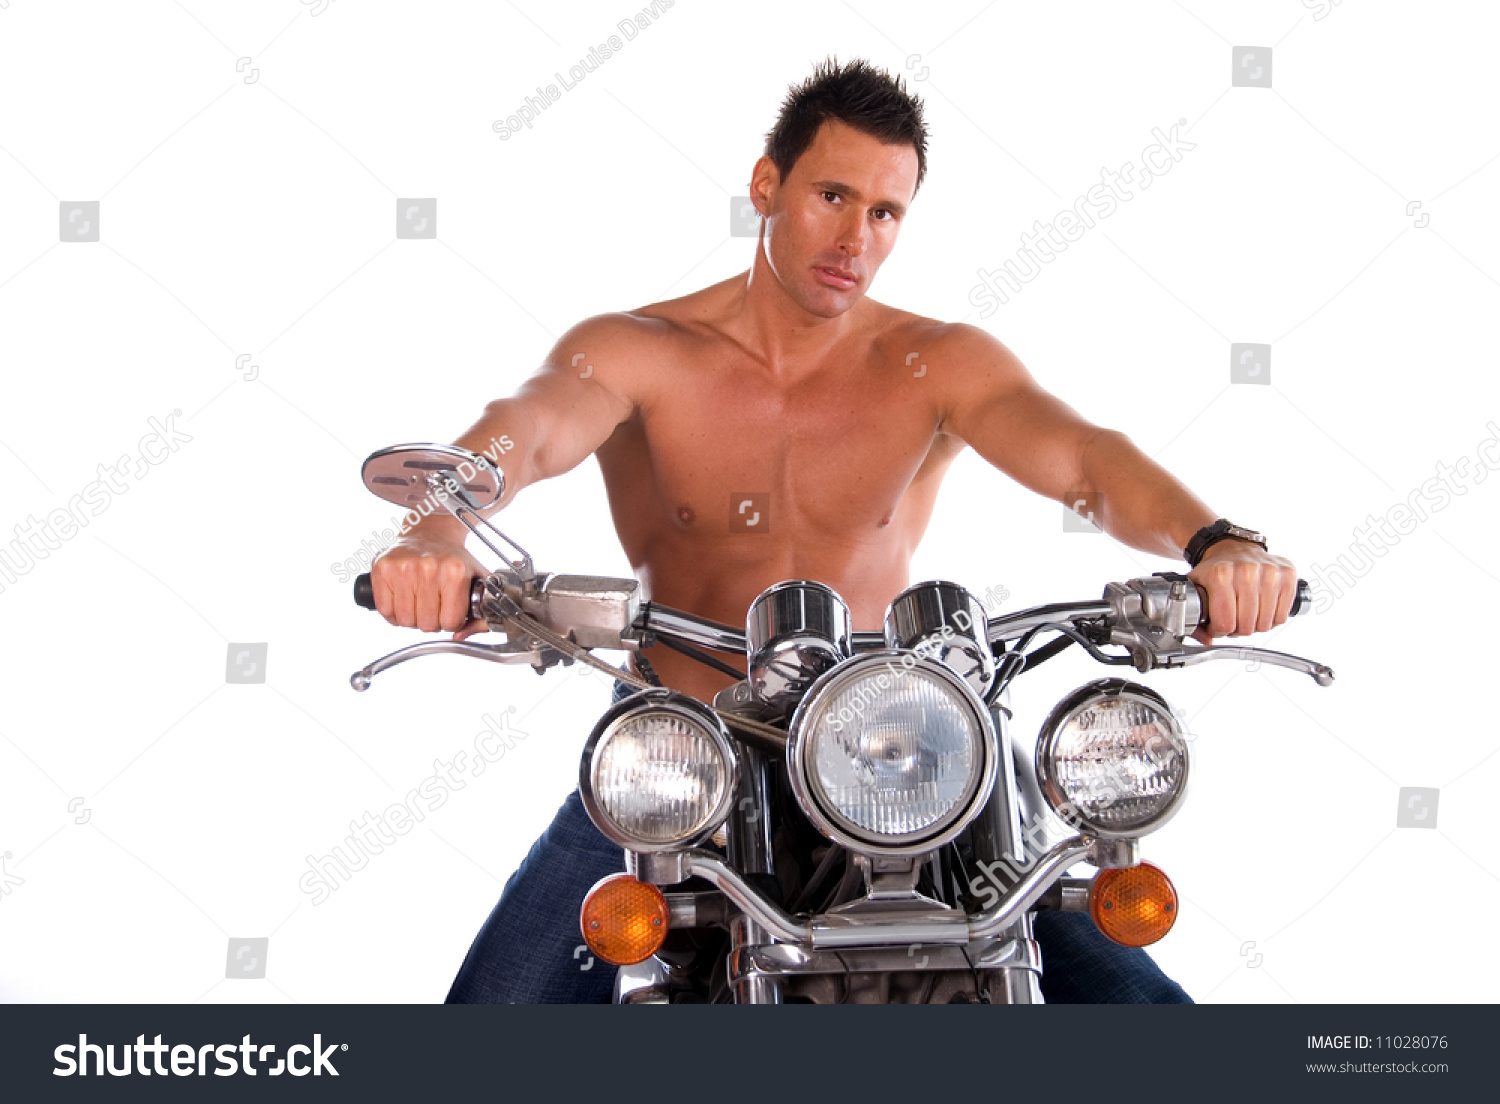 image Hot bikers in hot gay anal action